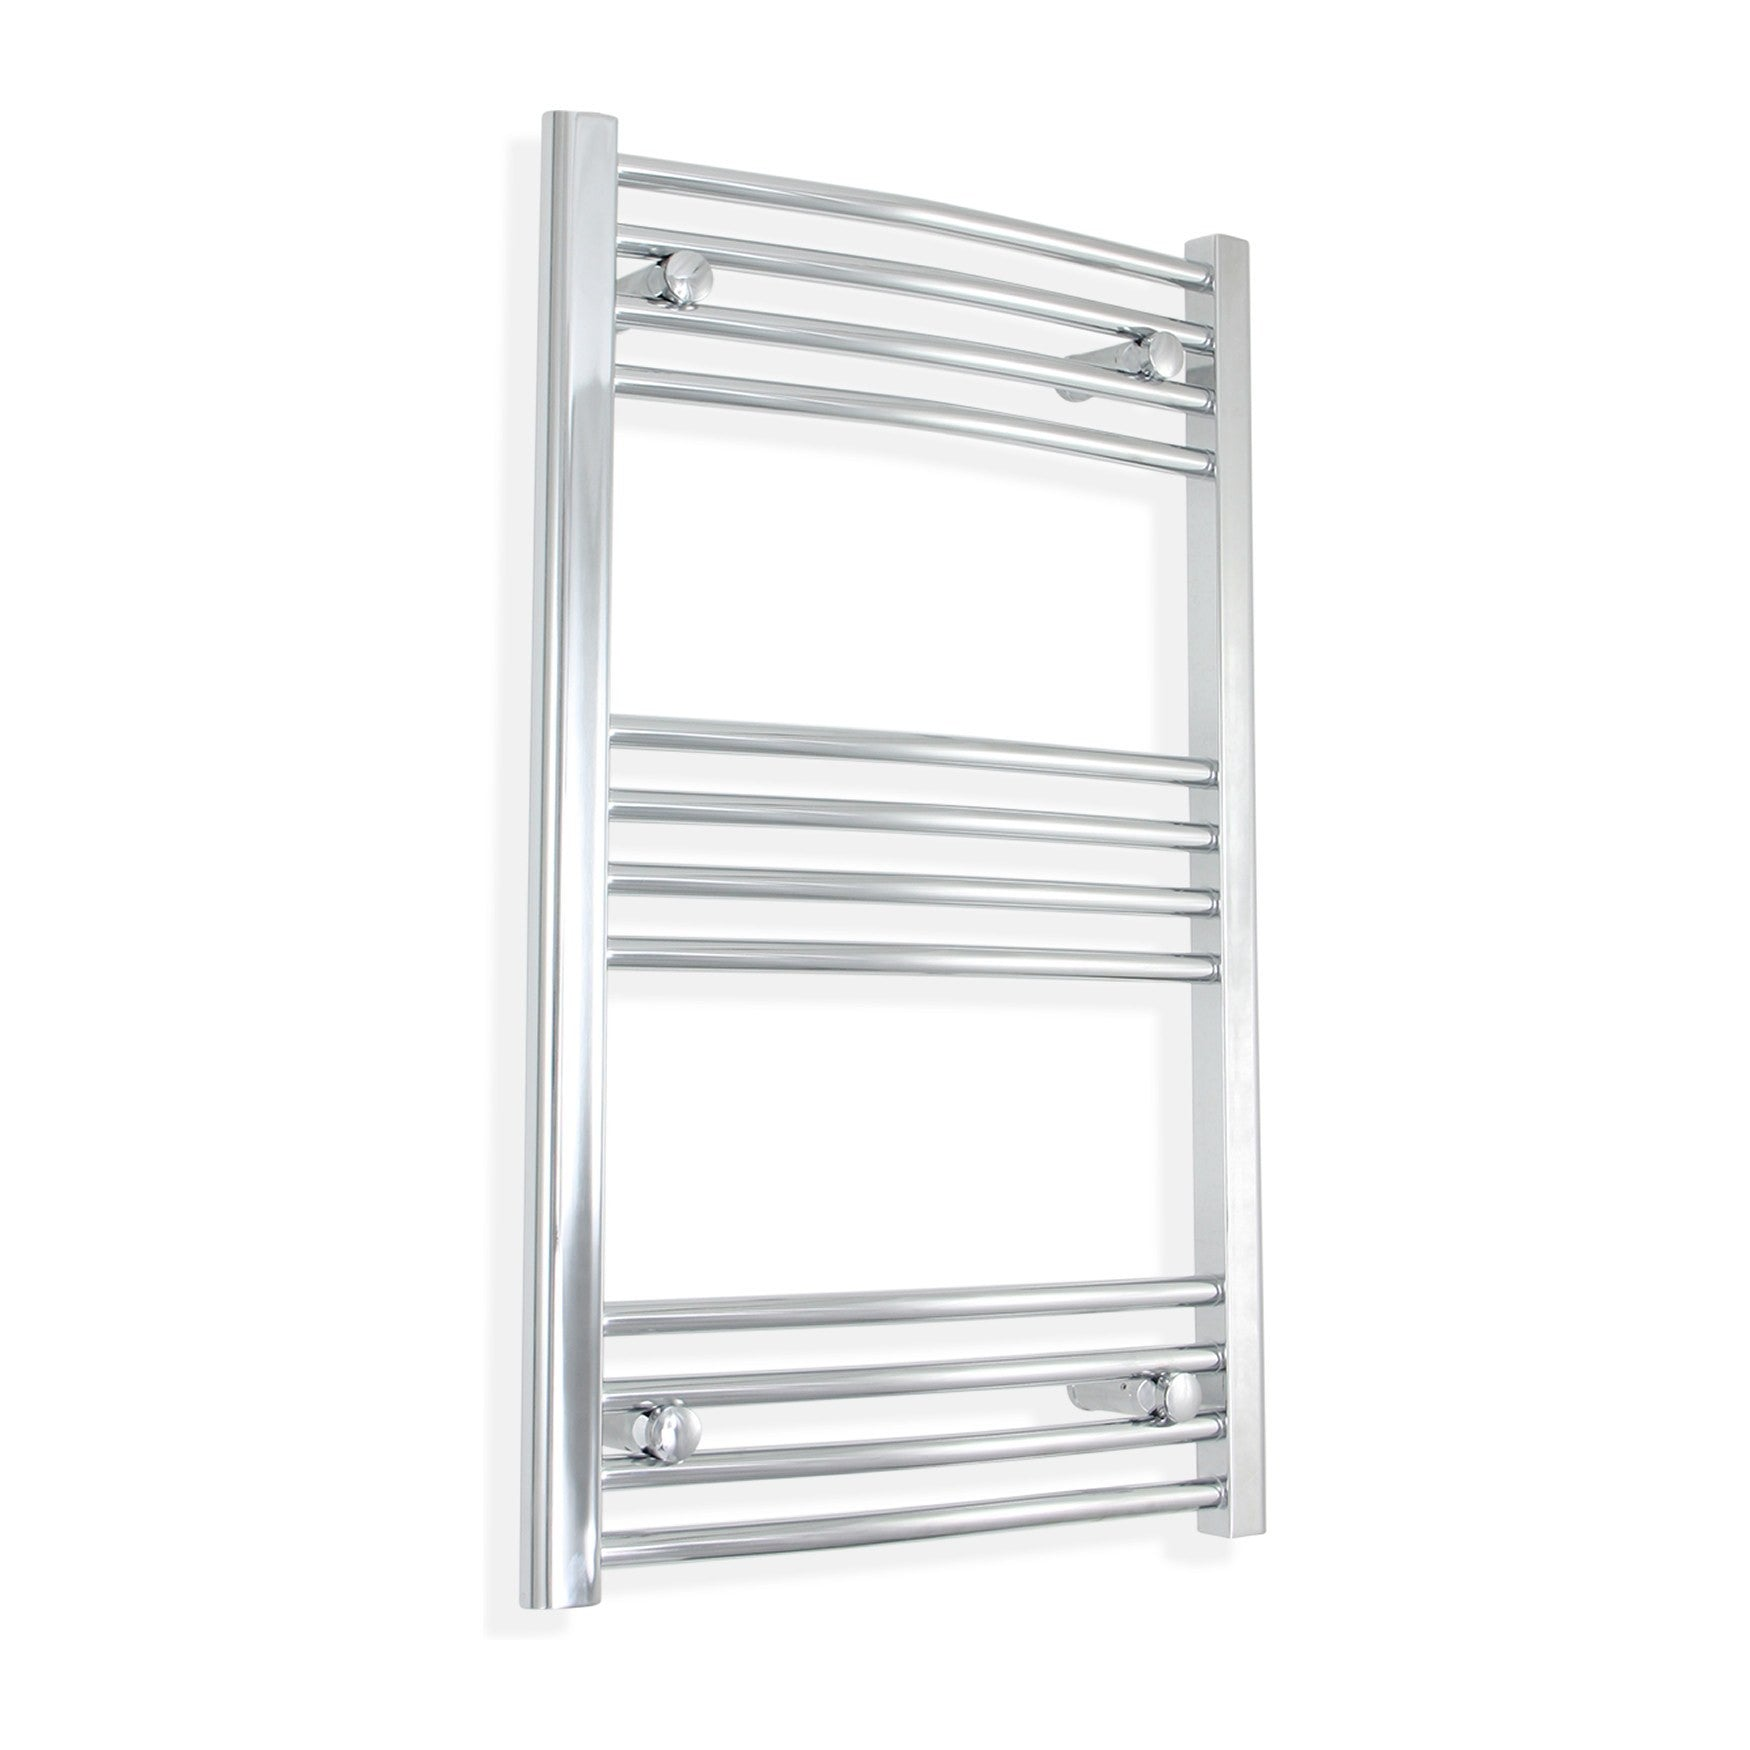 600mm Wide 800mm High Curved Chrome Towel Rail Radiator